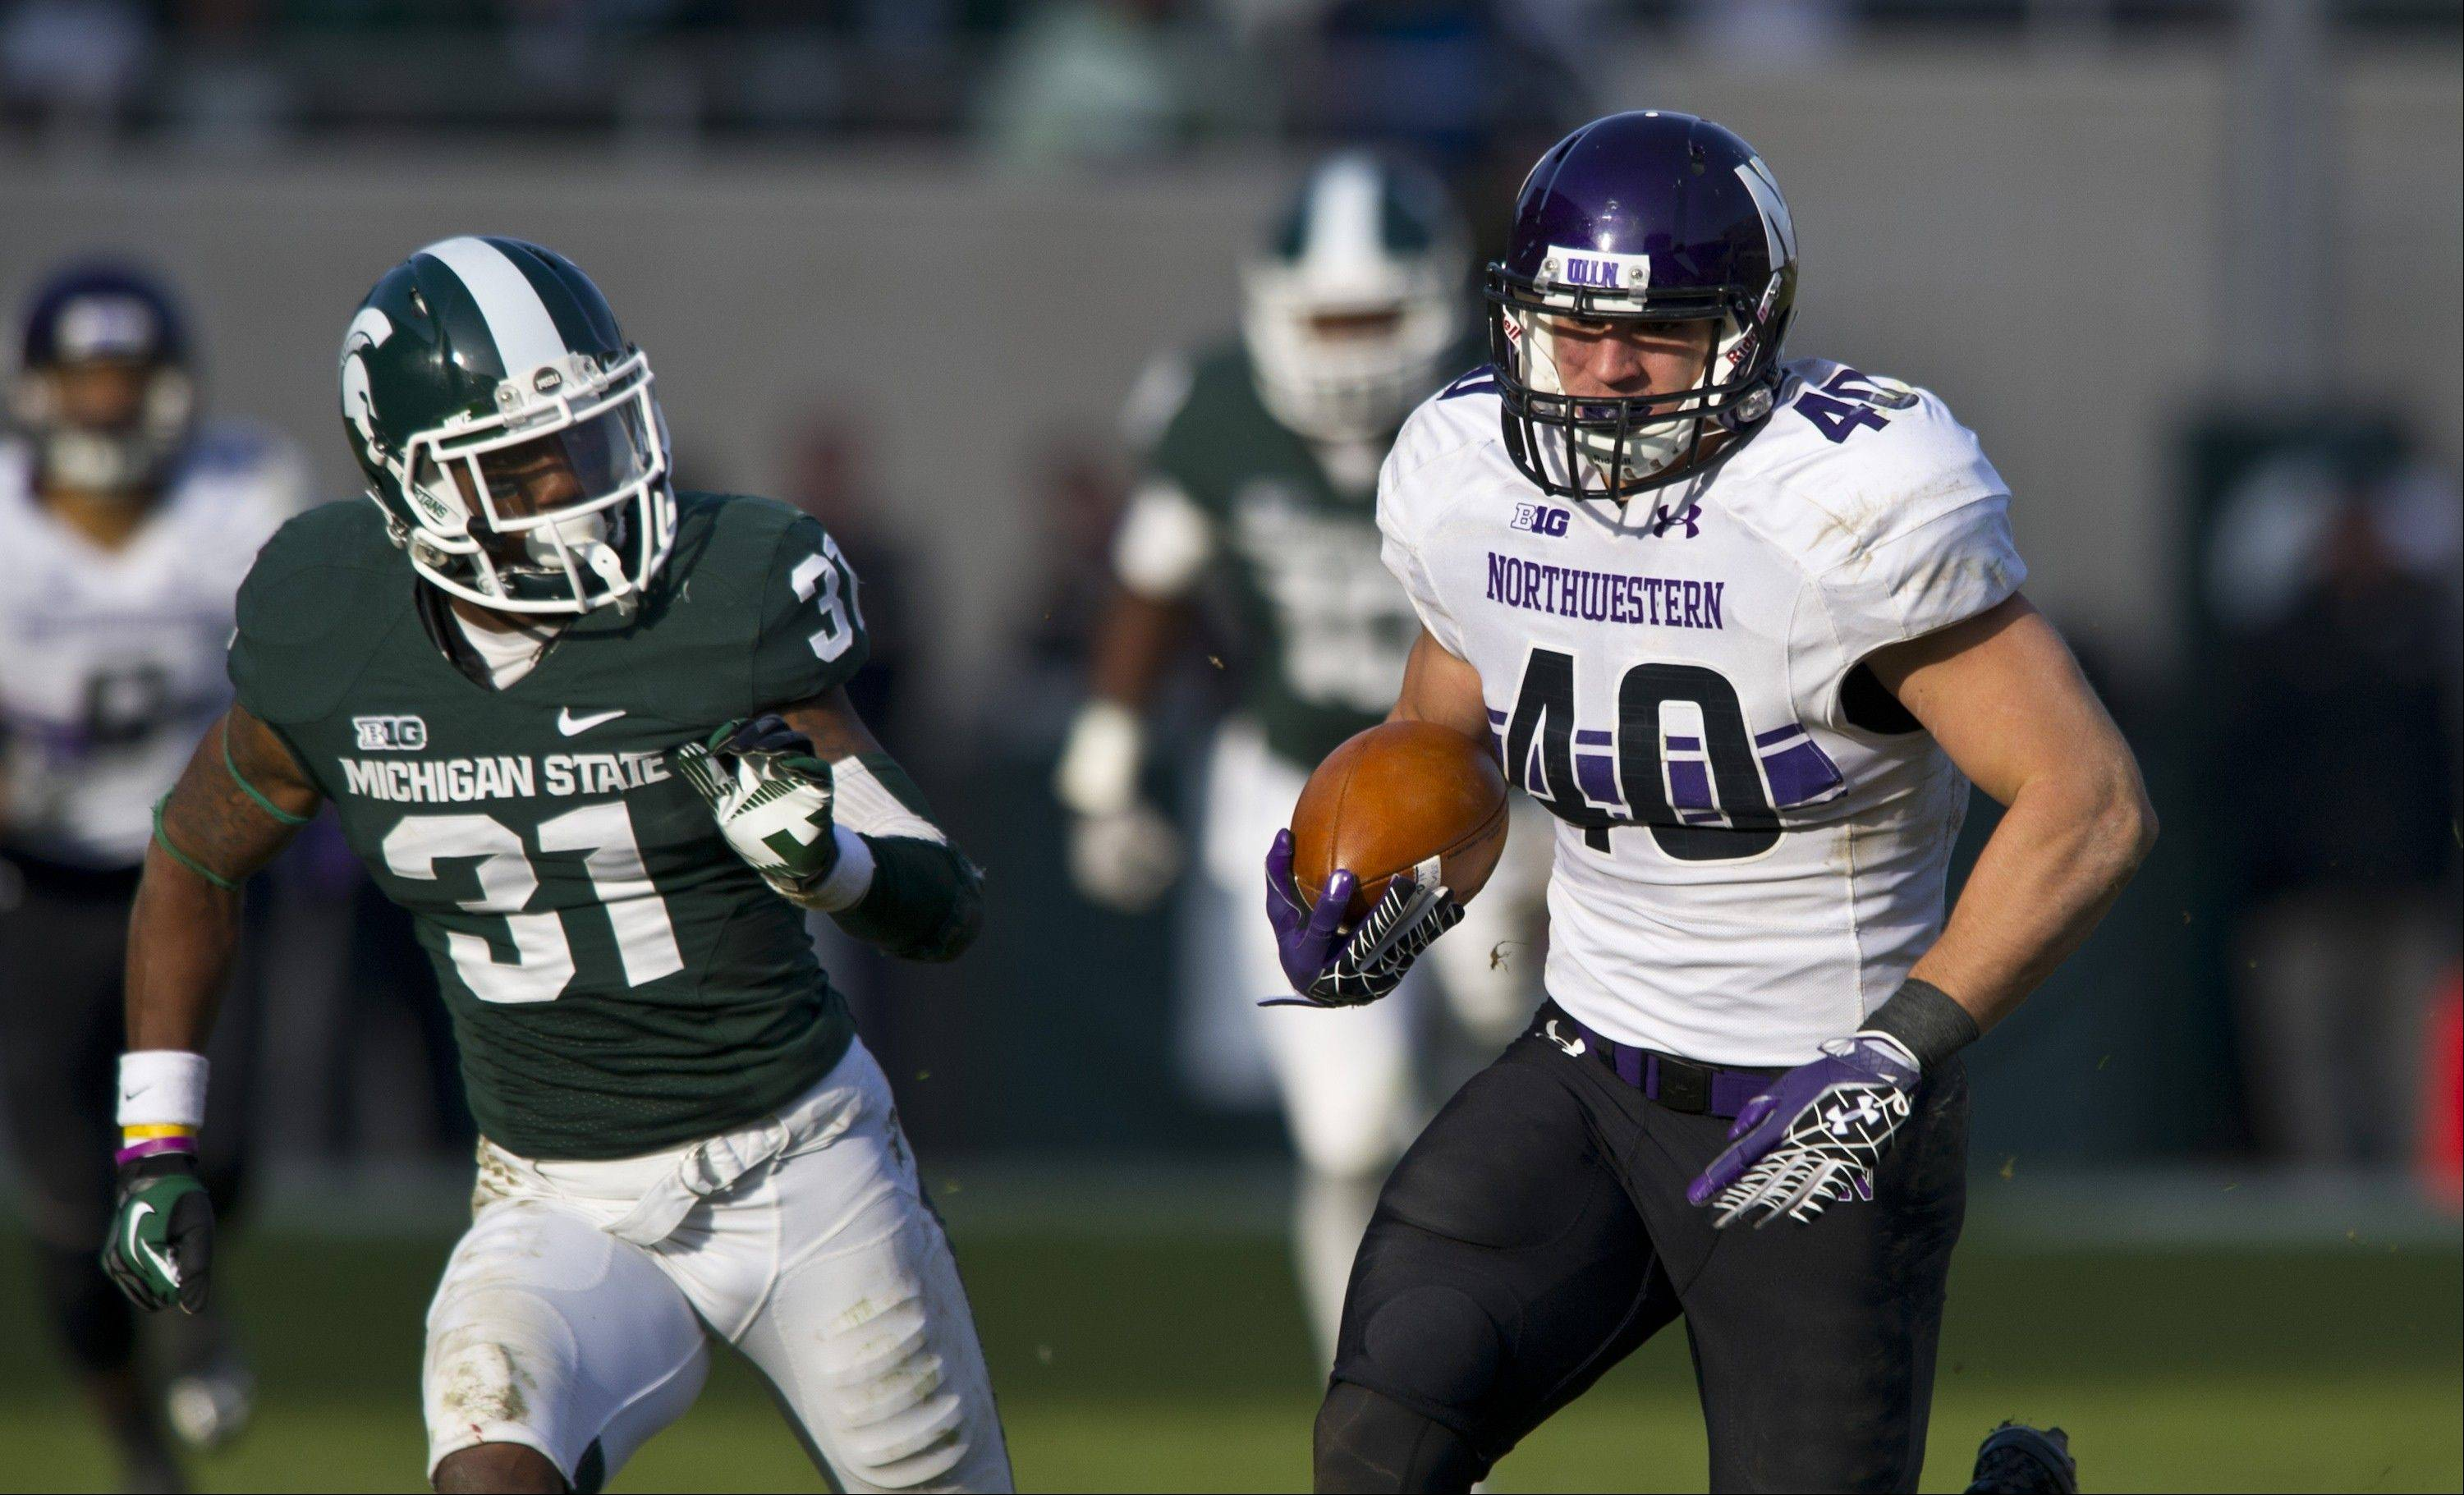 NU's Vitale big on winning